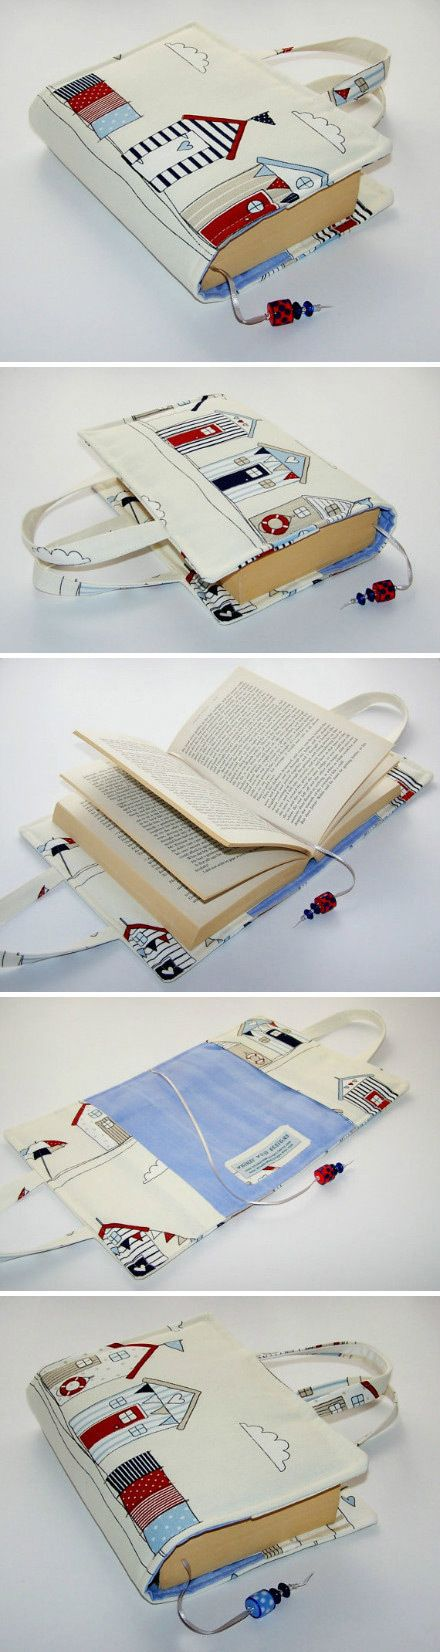 50 Effective Book Cover Designs and Ideas                                                                                                                                                                                 More